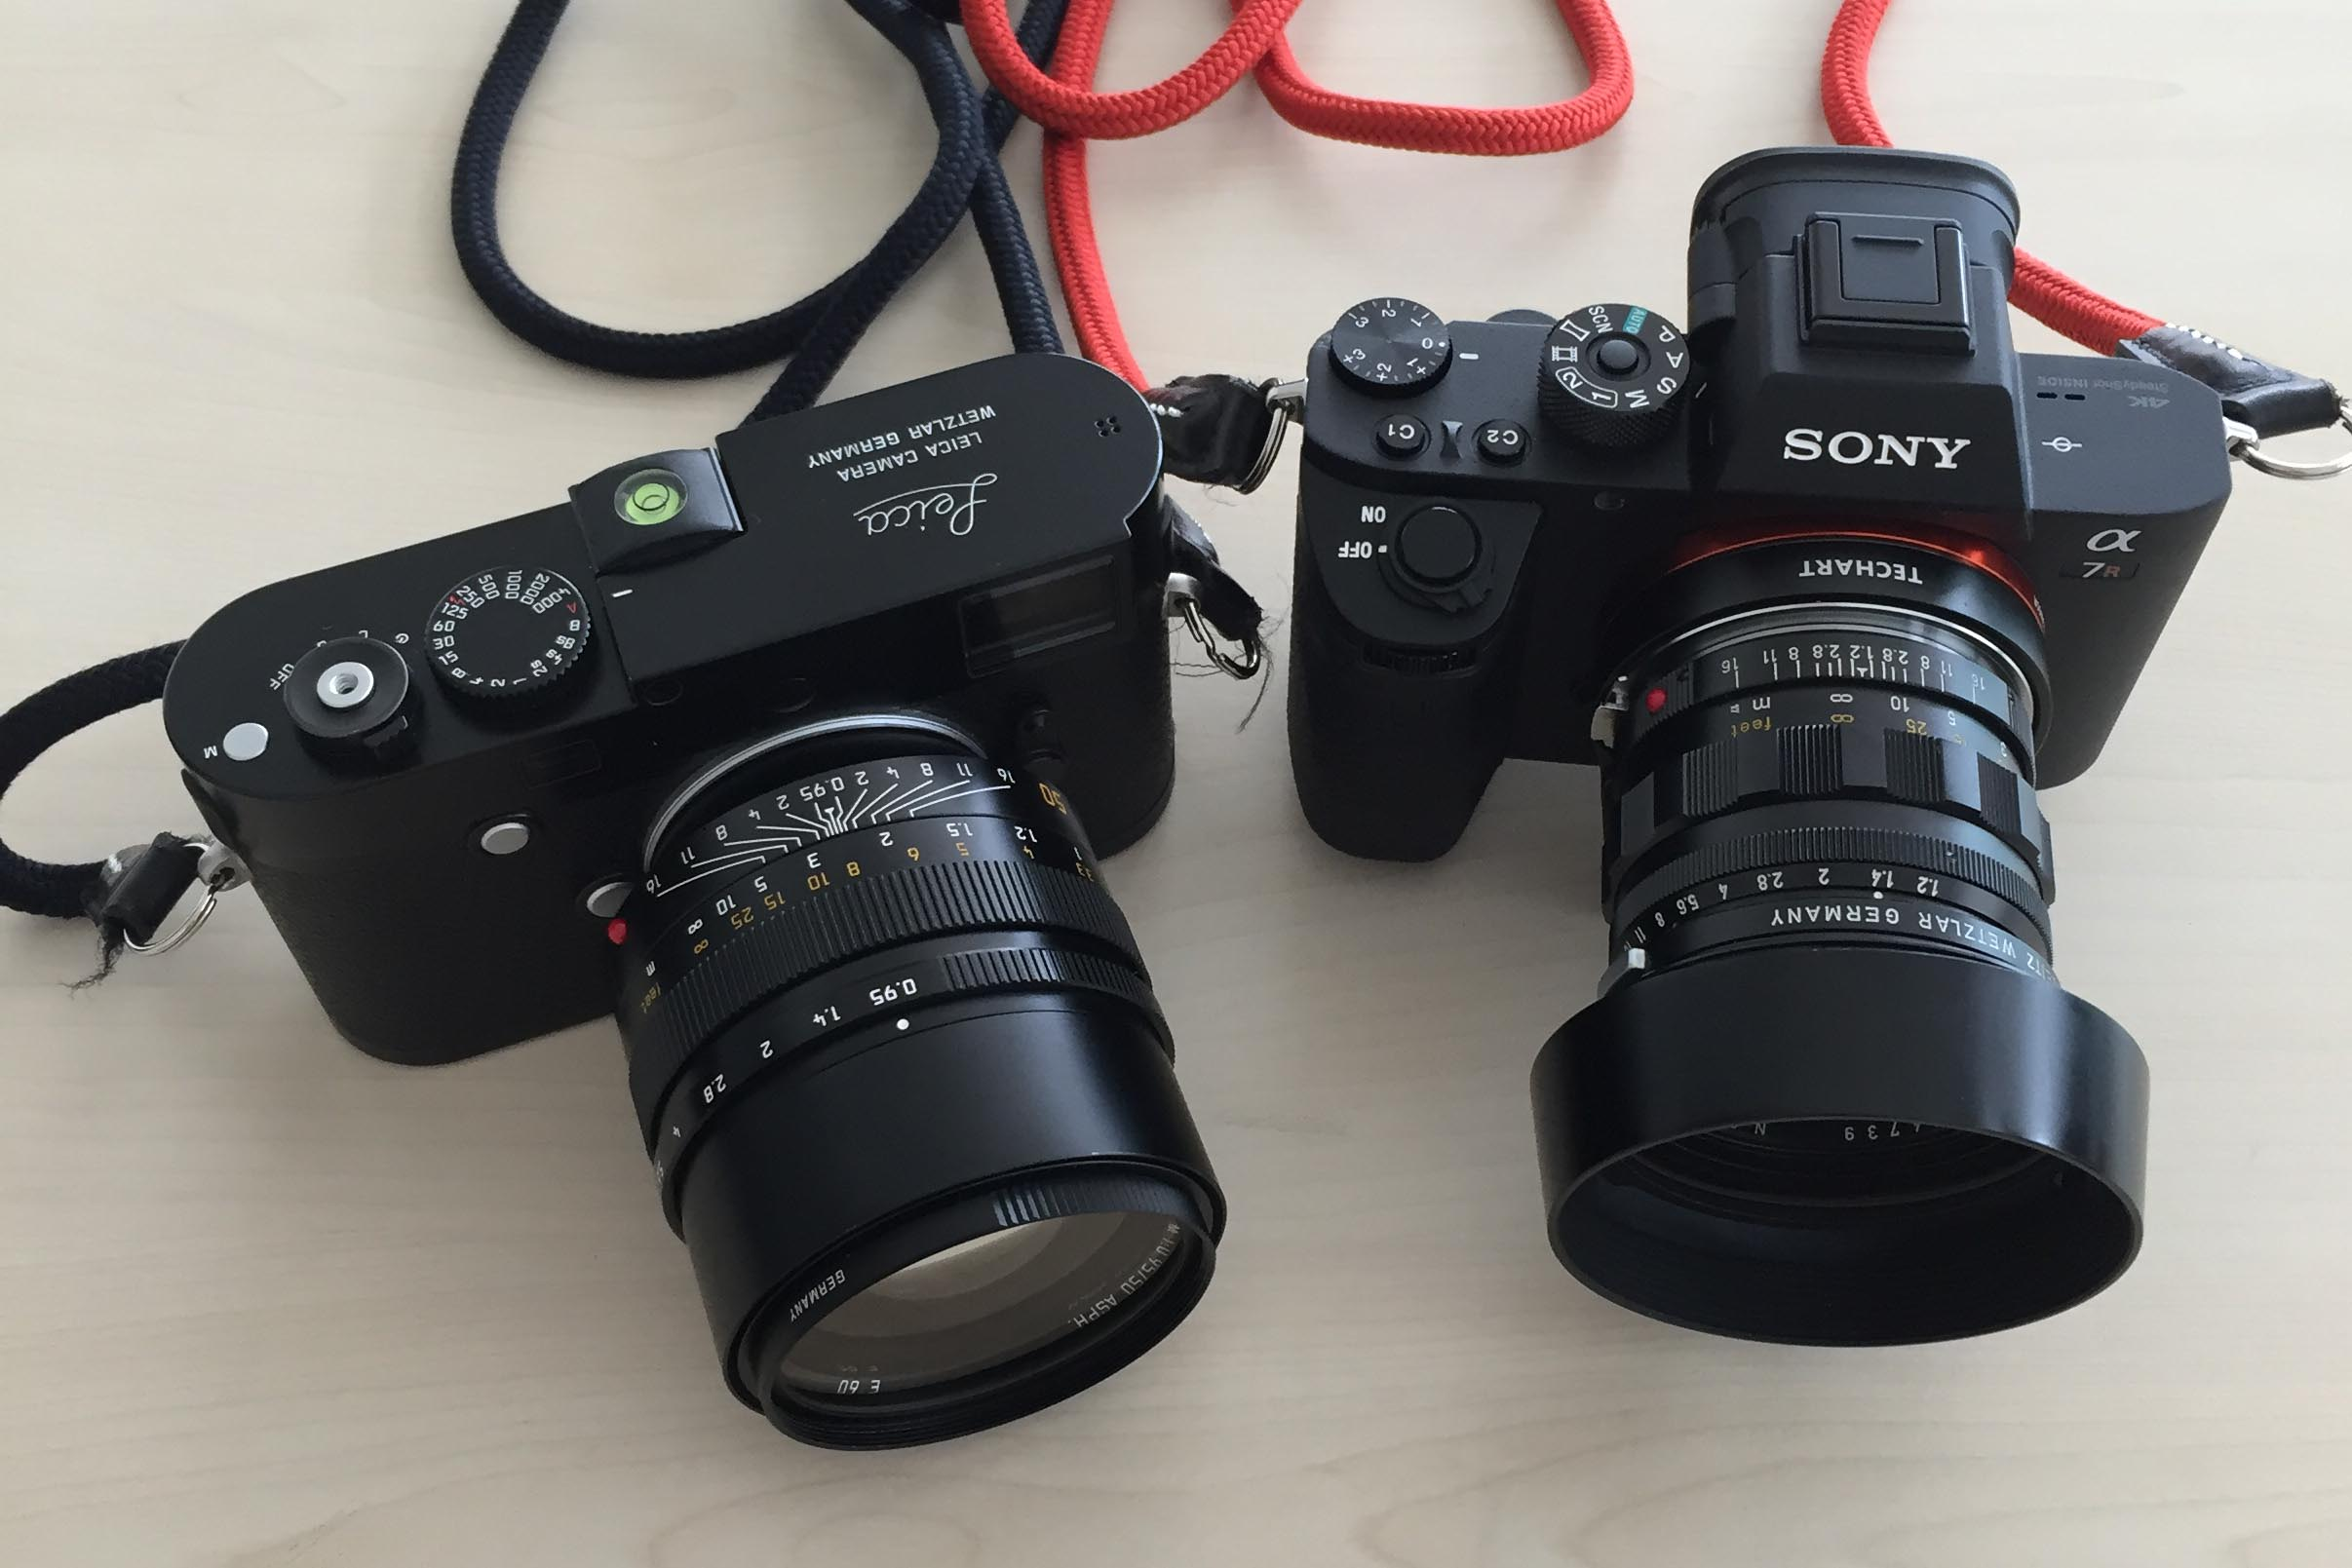 Left to Right: Leica MP240 + Leica 50mm f/0.95 Noctilux and Sony A7r MKII + Techart AF Adapter + Leica 50mm f/1.2 Noctilux